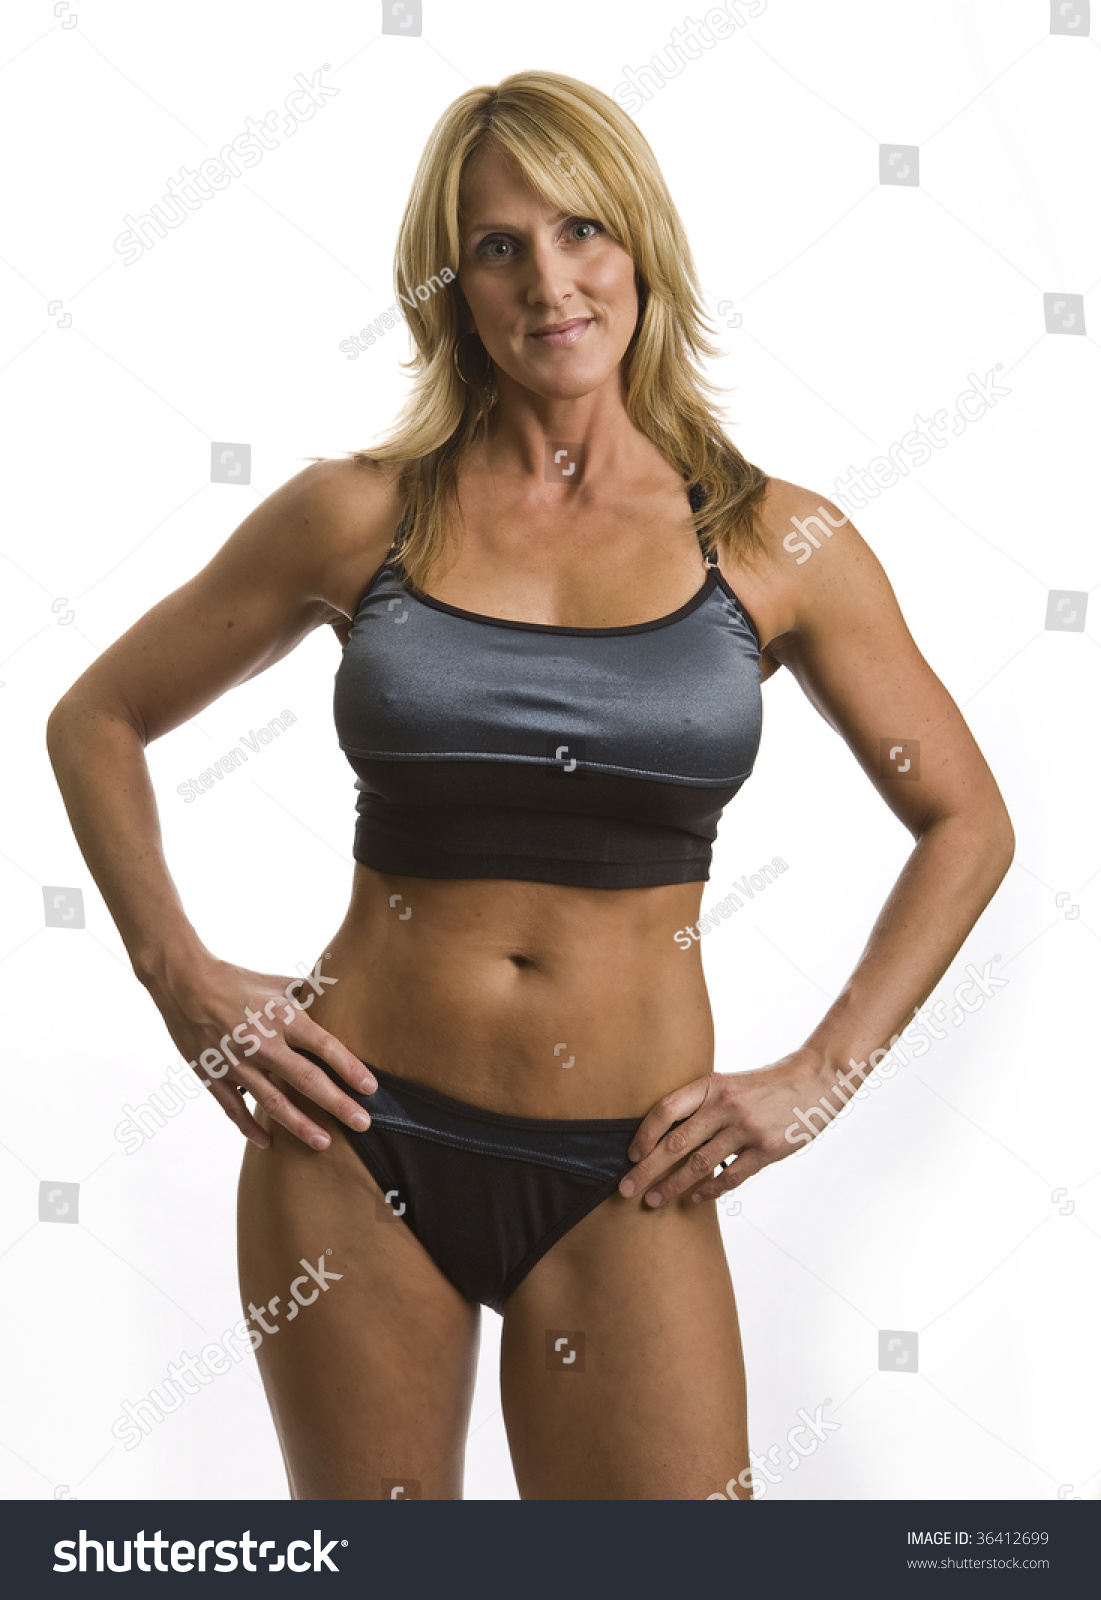 very fit mature woman work out stock photo (100% legal protection